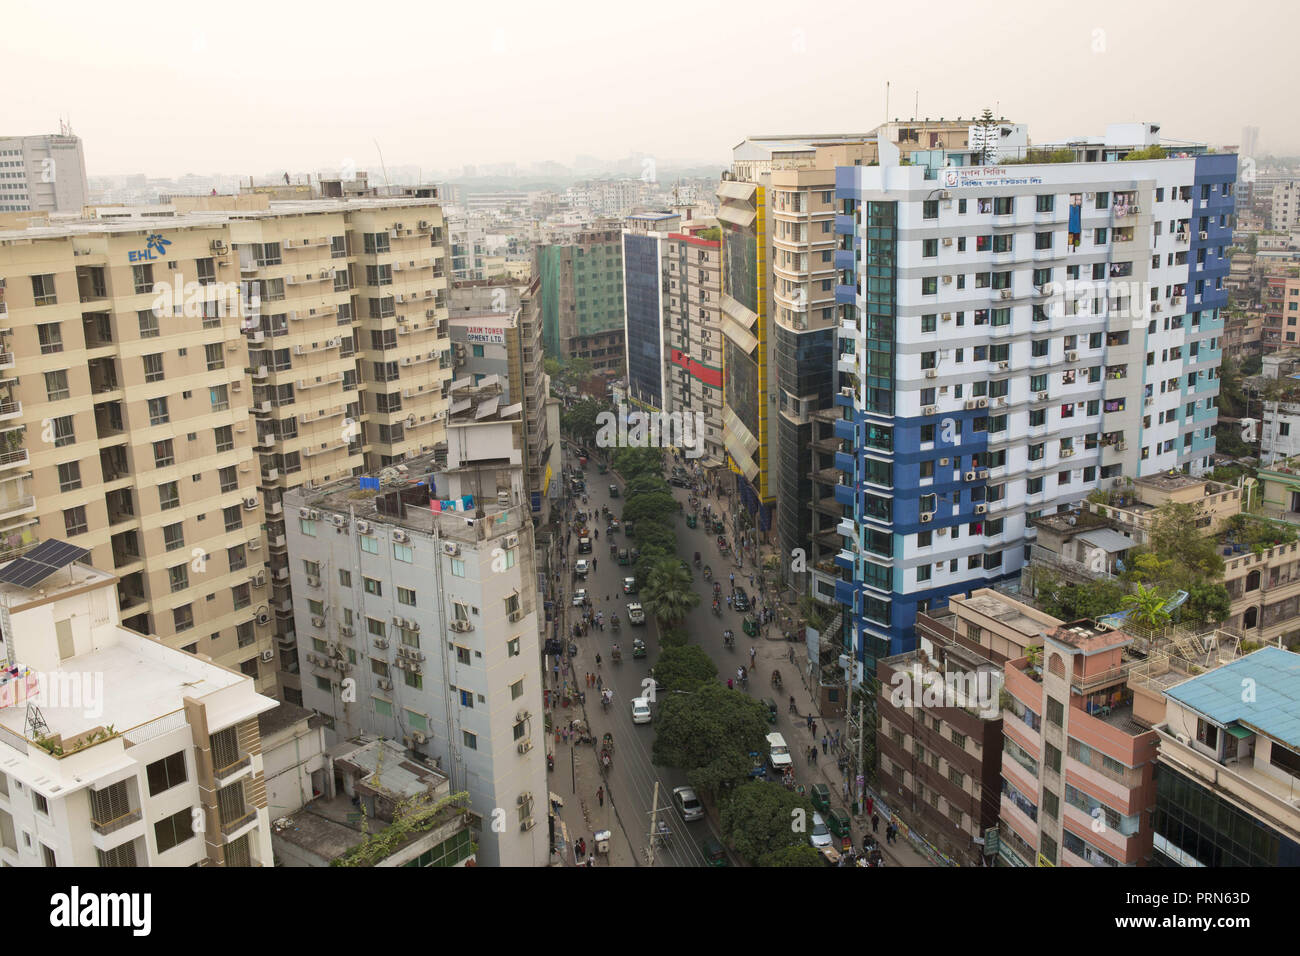 Dhaka, Bangladesh. 3rd Oct, 2018. DHAKA, BANGLADESH - OCTOBER 03 : A general view of the Bangladeshi capital city Dhaka in Dhaka, Bangladesh on October 03, 2018.Dhaka is the main hub of economic activity in the country Bangladesh, generating a fifth of national GDP and nearly half of all formal jobs. Credit: Zakir Hossain Chowdhury/ZUMA Wire/Alamy Live News - Stock Image